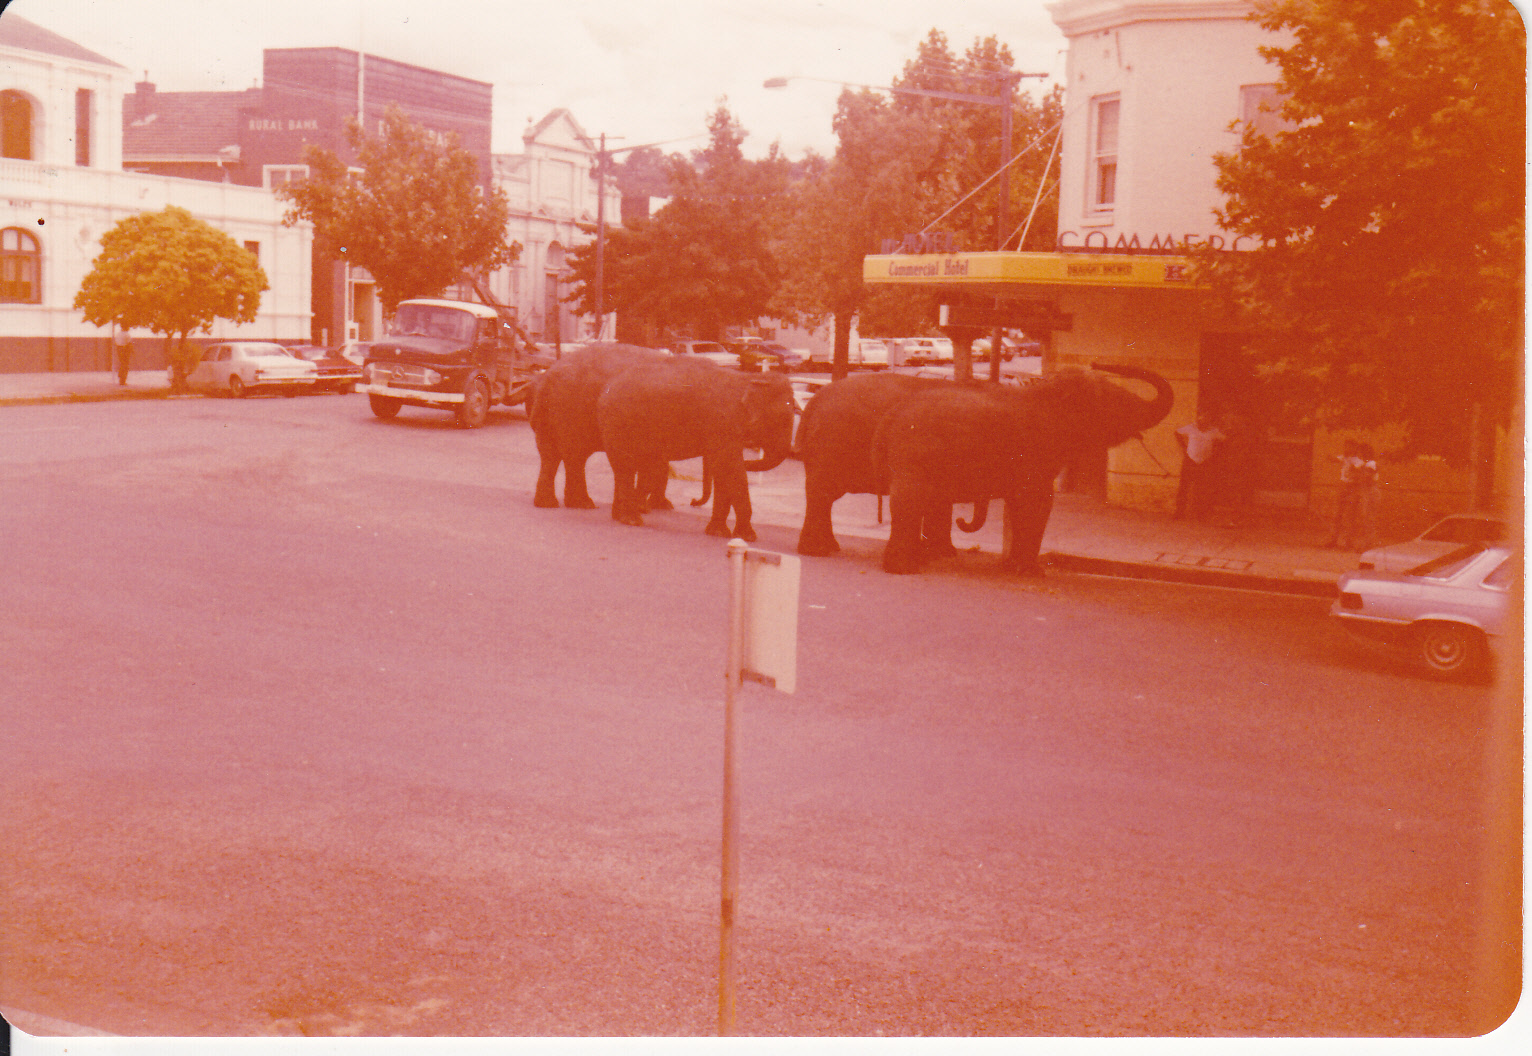 CIRCUS IS IN TOWN -OUTSIDE COMMERCIAL HOTEL LATE 1977